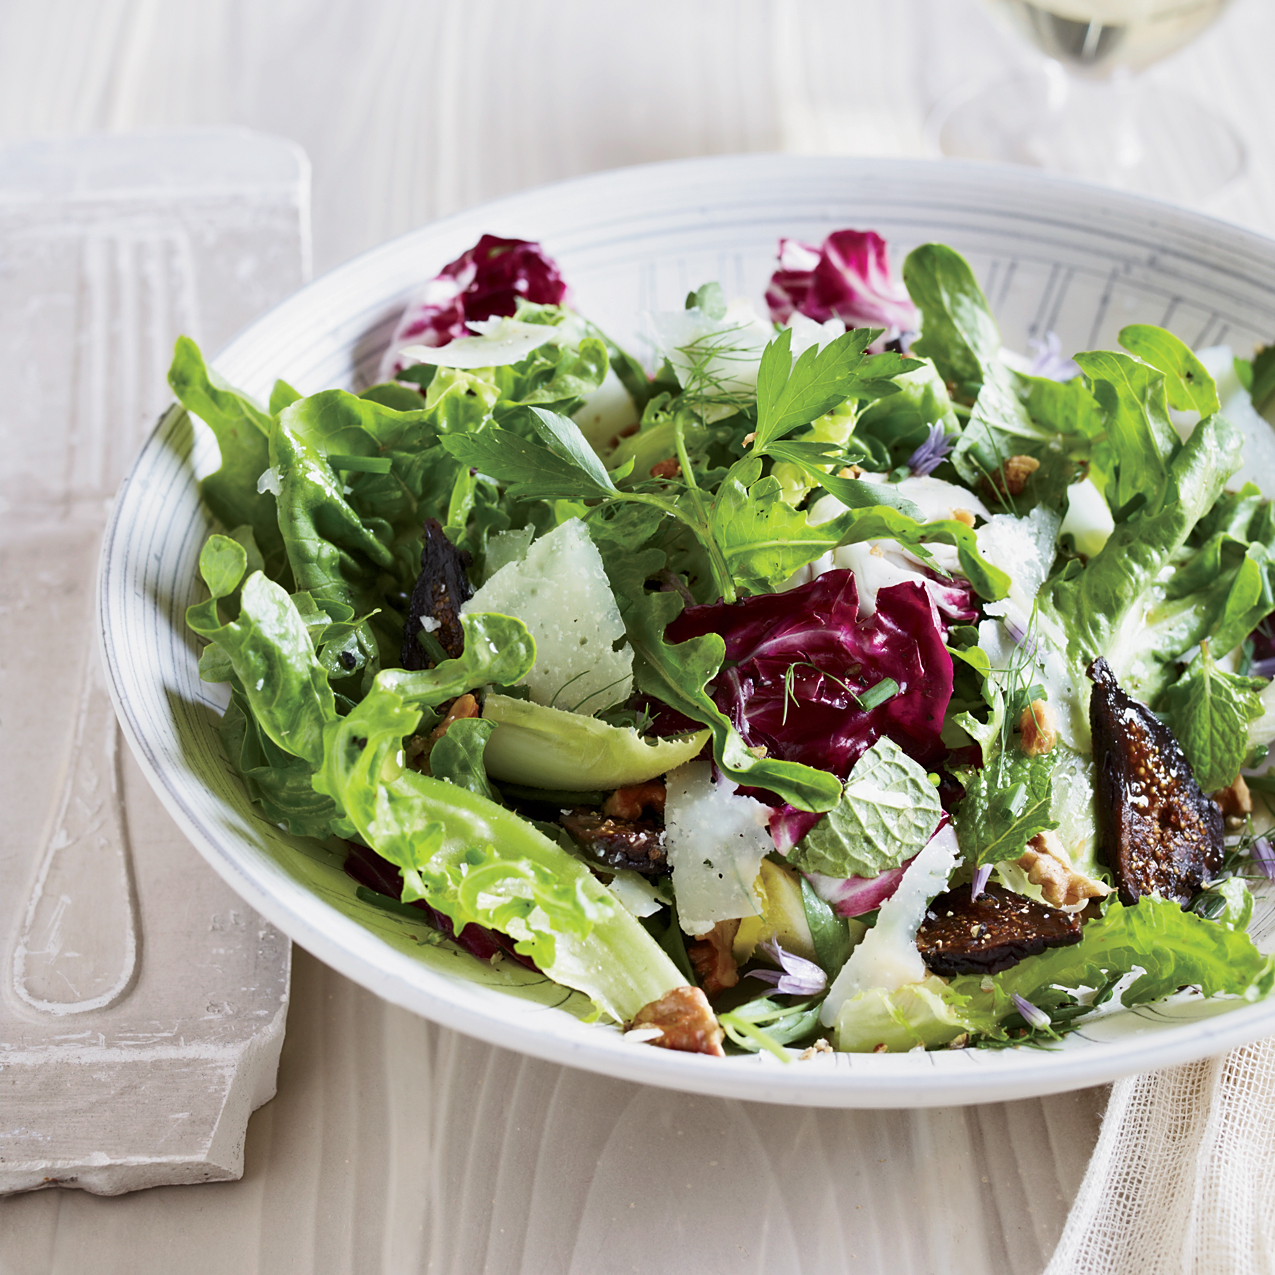 Mixed-Greens-and-Herb Salad with Figs and Walnuts